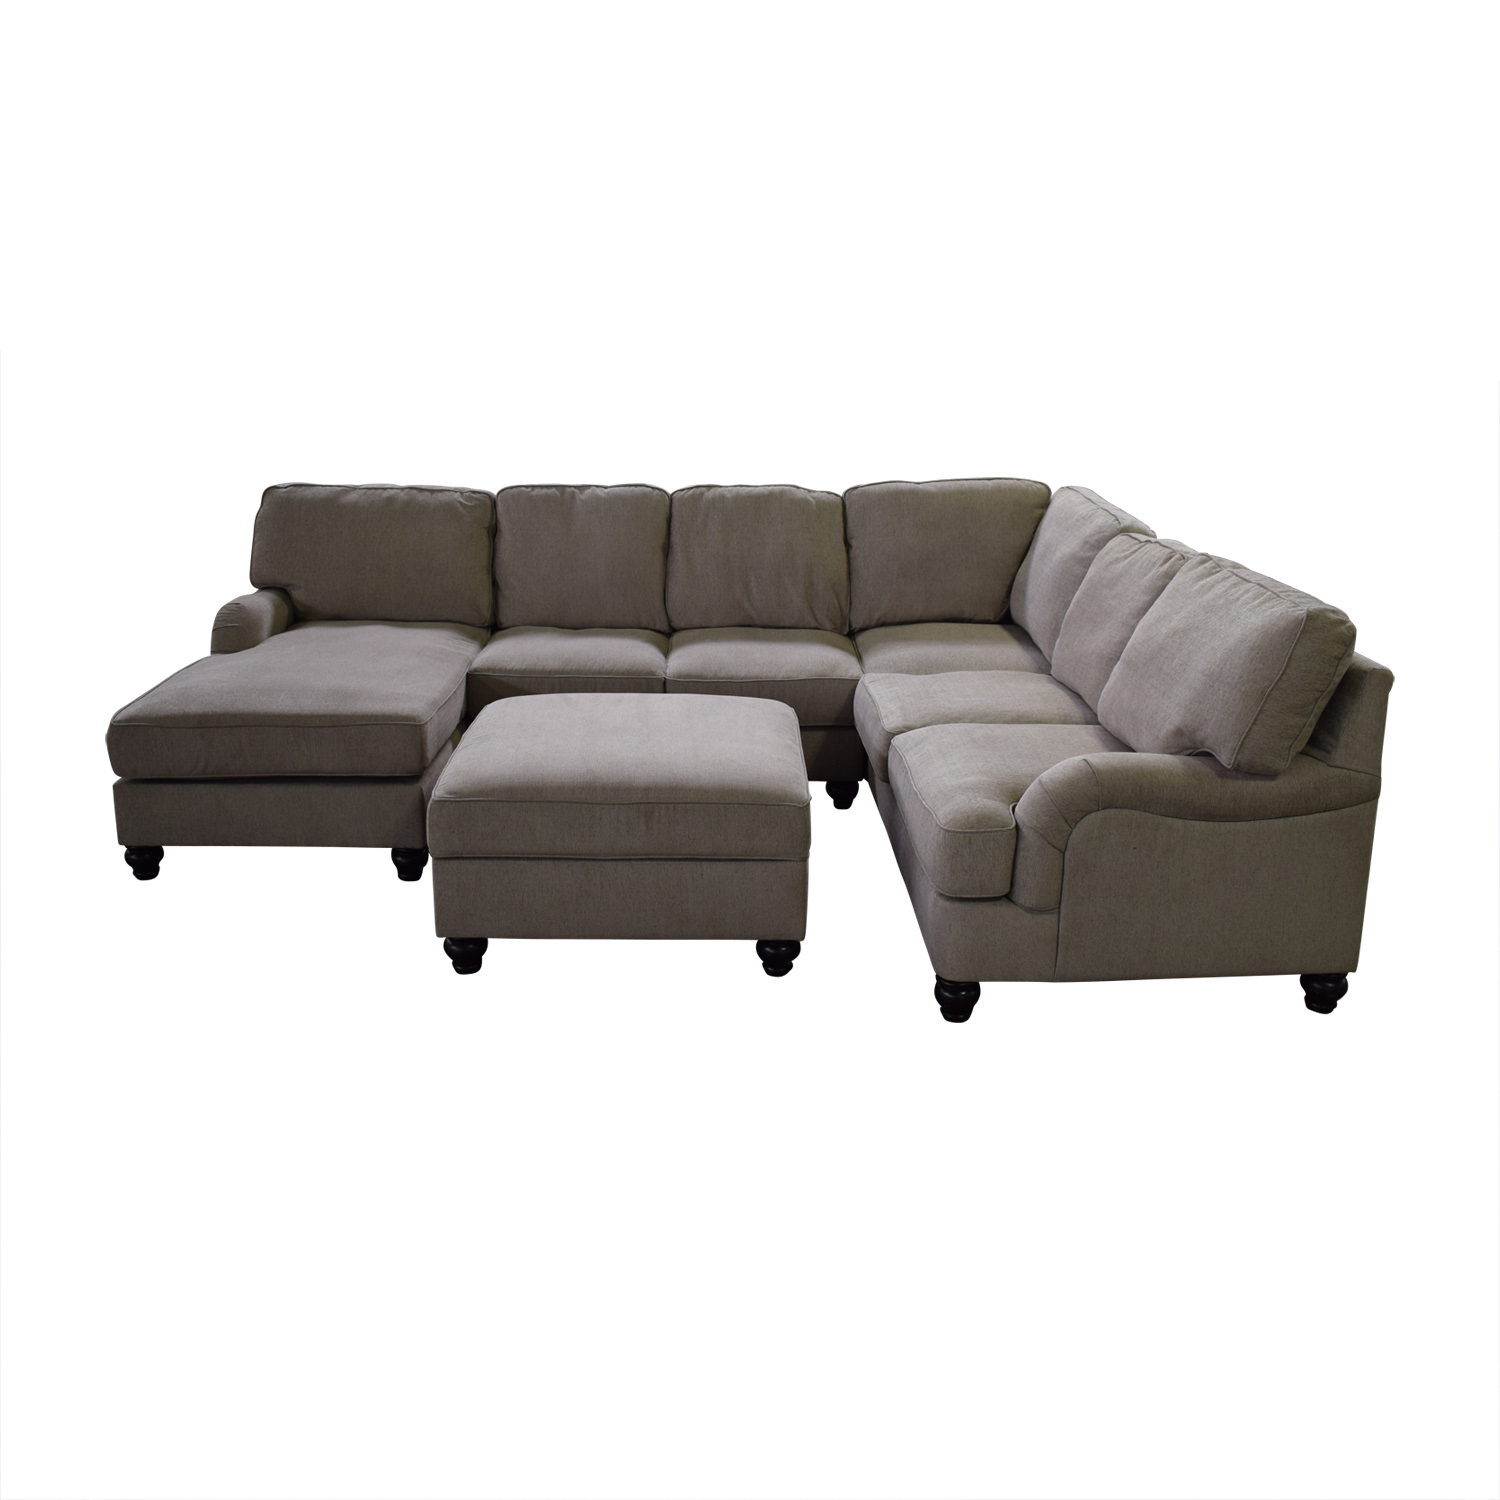 84% OFF - Ashley Furniture Ashley Furniture Chaise Sectional Sofa / Sofas